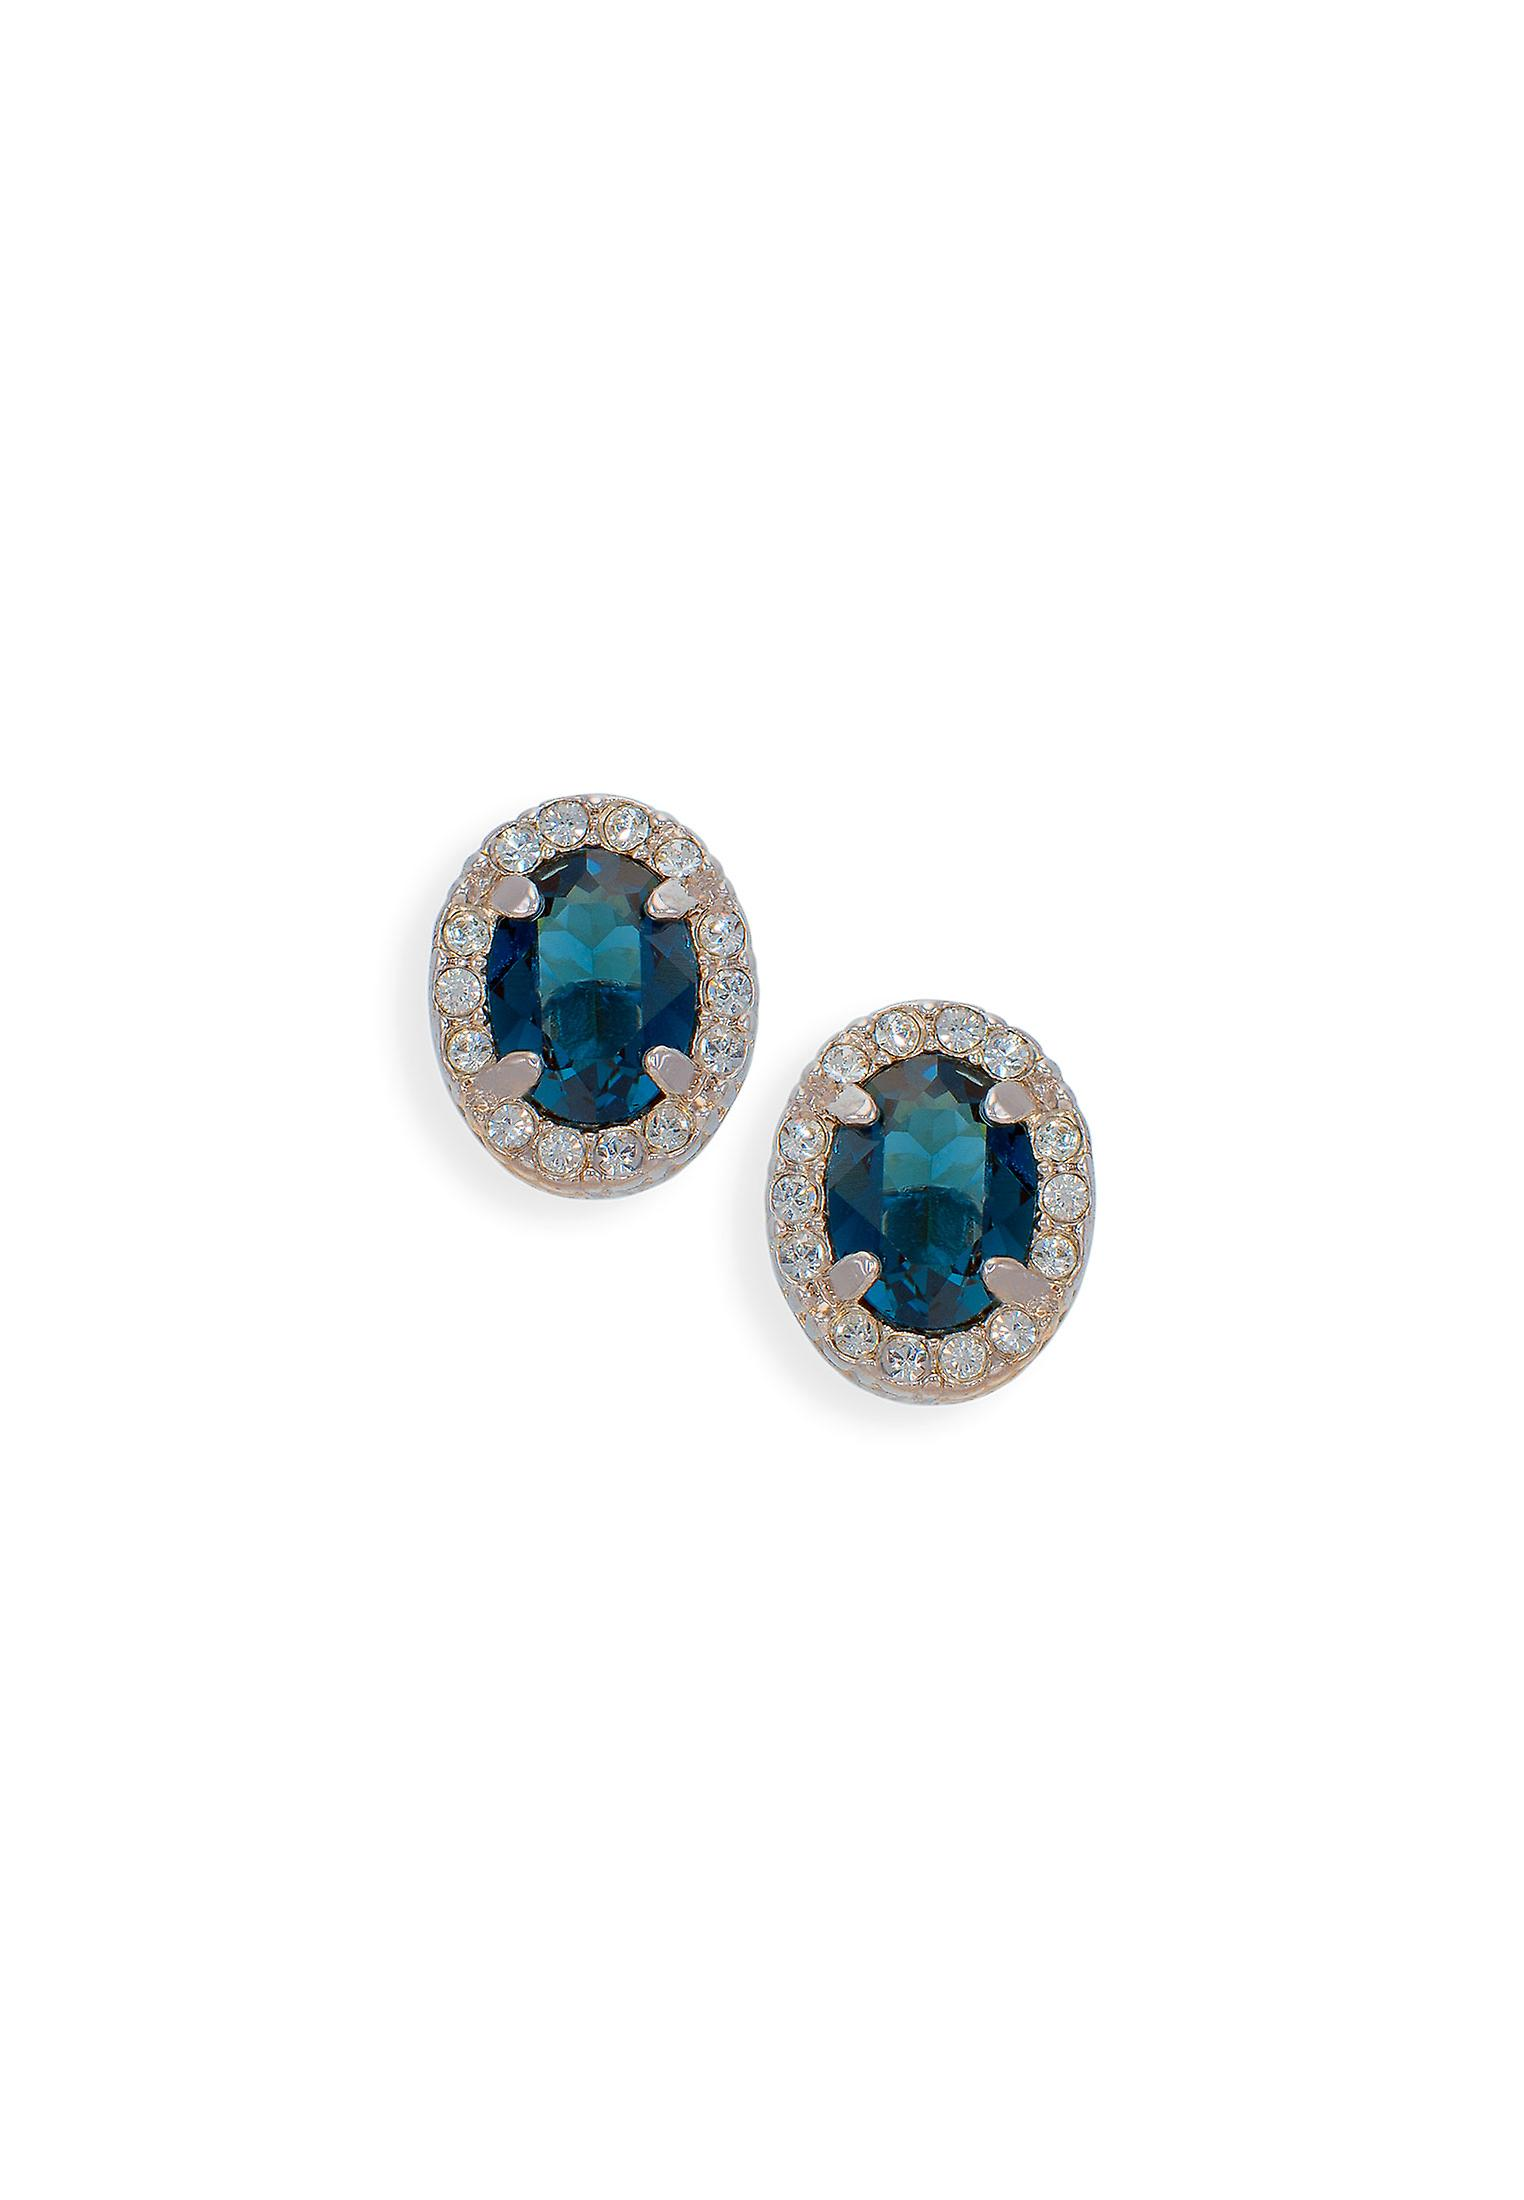 Blue earrings with crystals from Swarovski 511